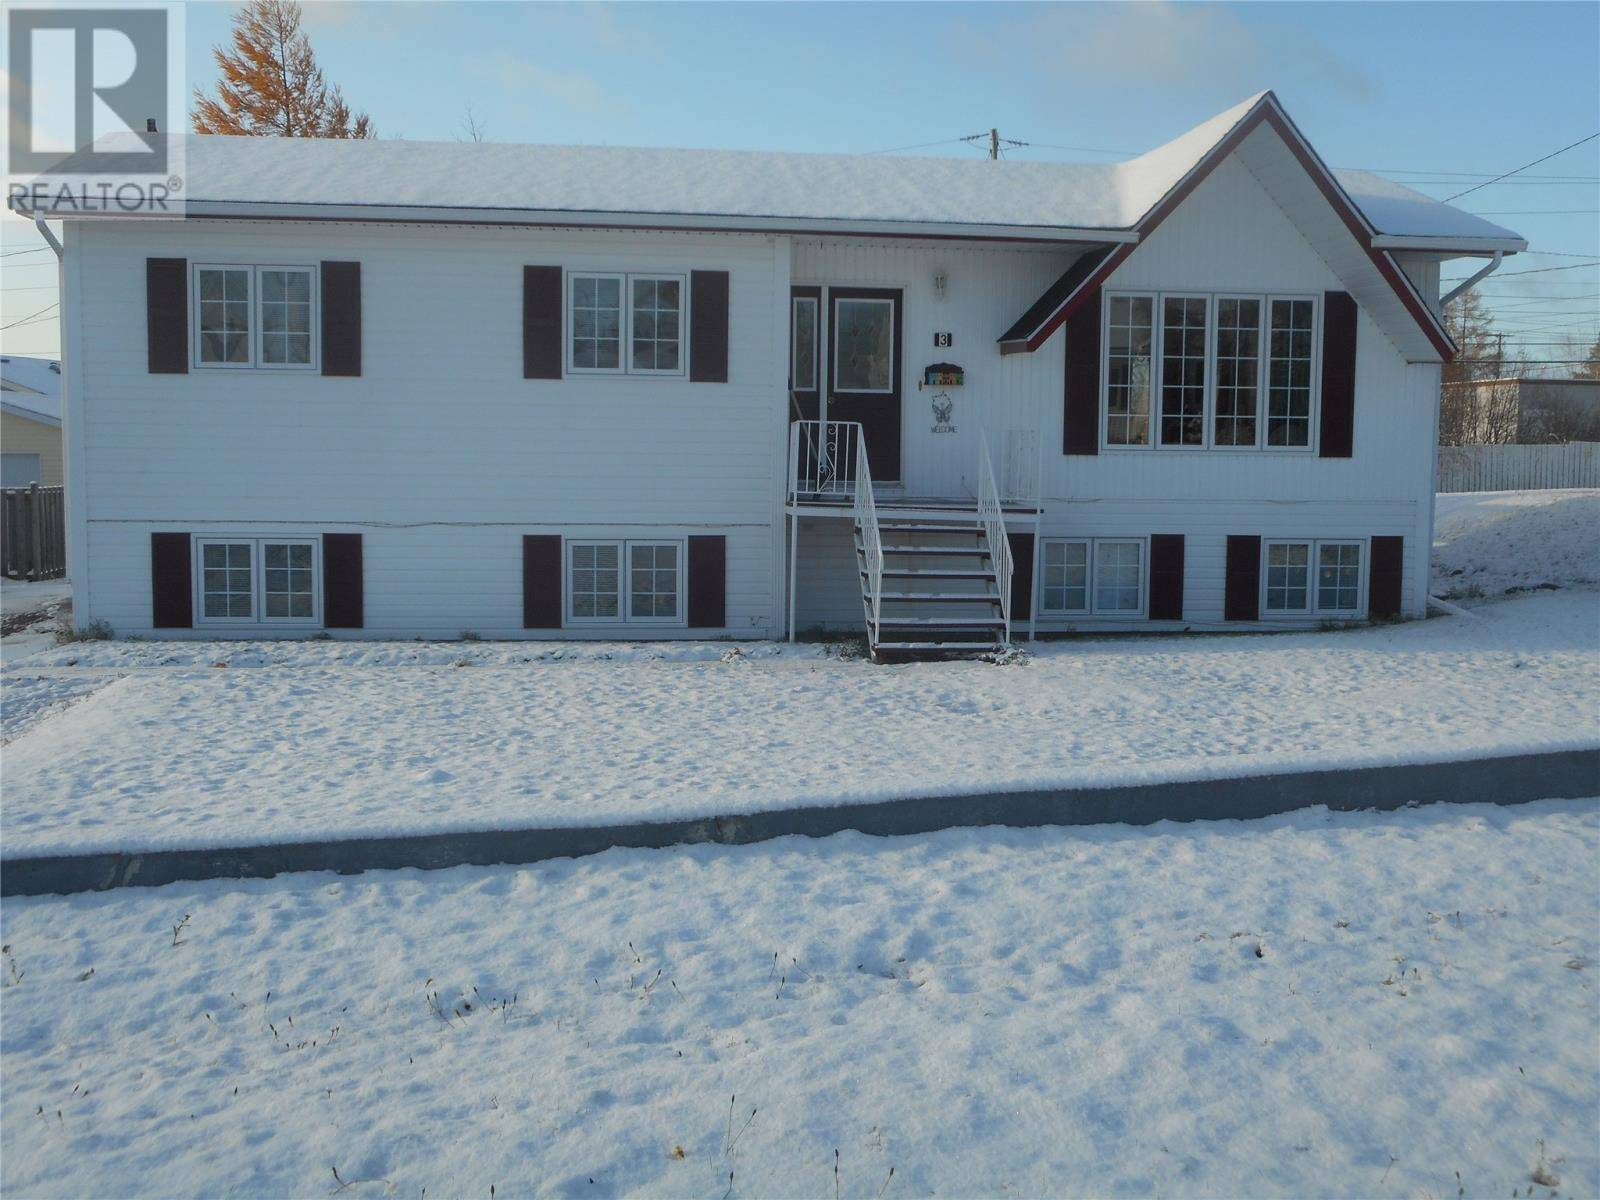 House for sale at 3 Bishop St Grand Falls-windsor Newfoundland - MLS: 1207128